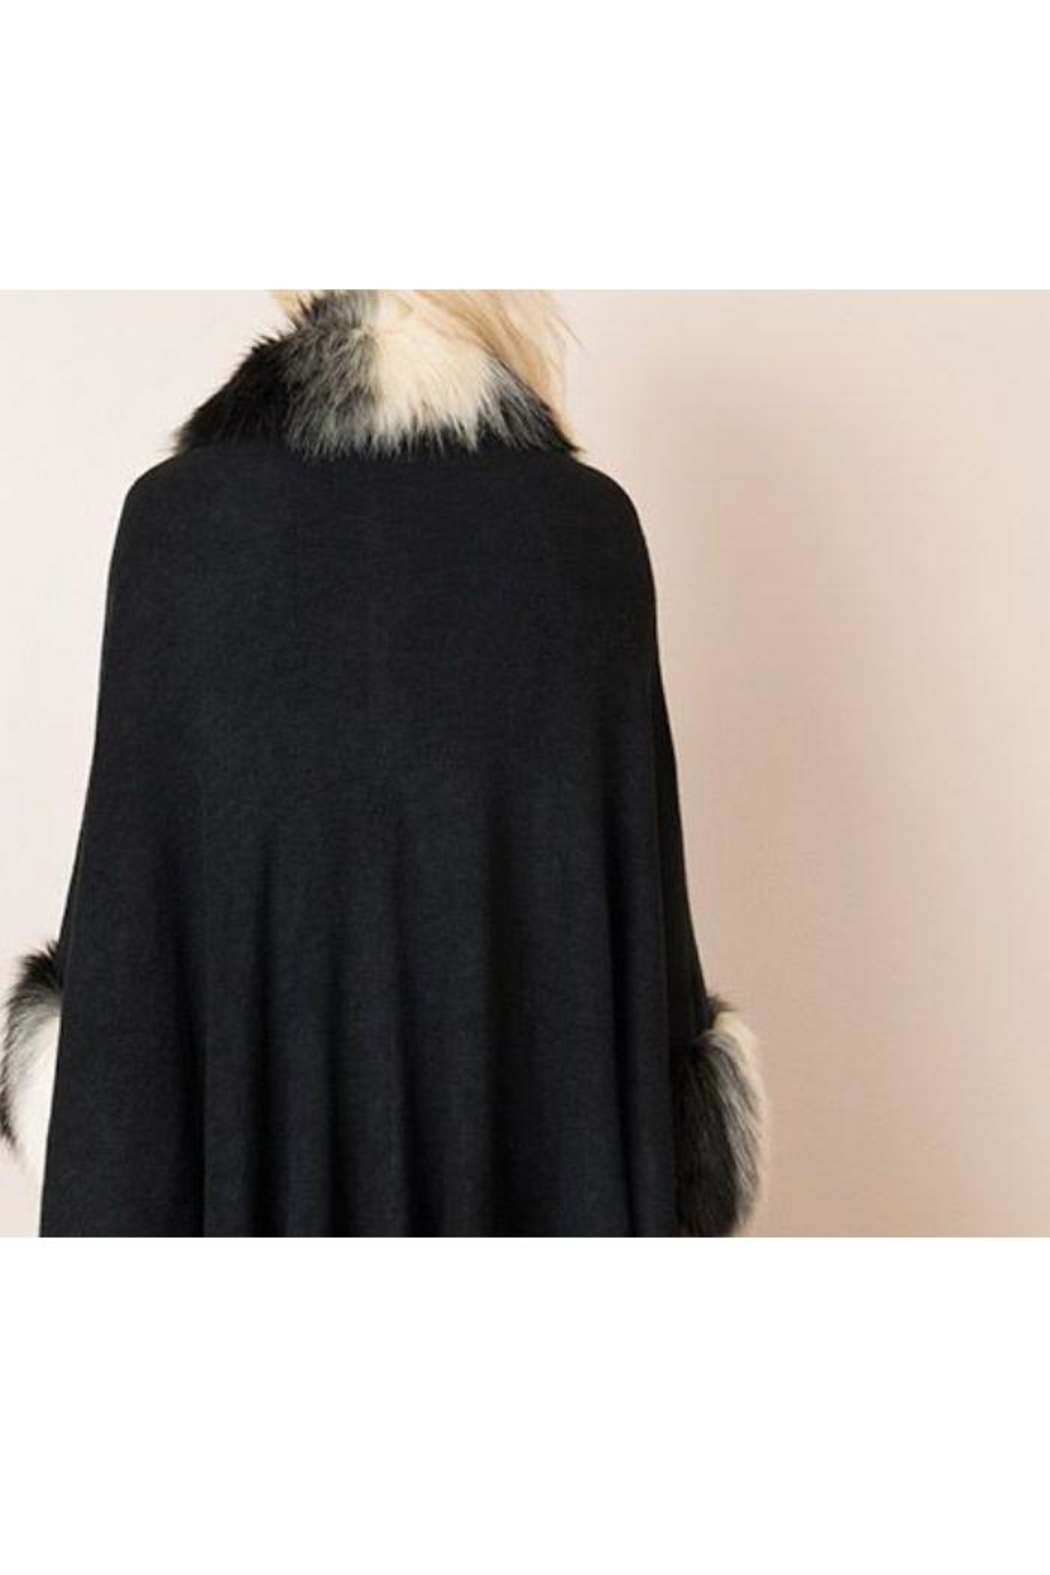 Pia Rossini Faux-Fur Capelet - Side Cropped Image